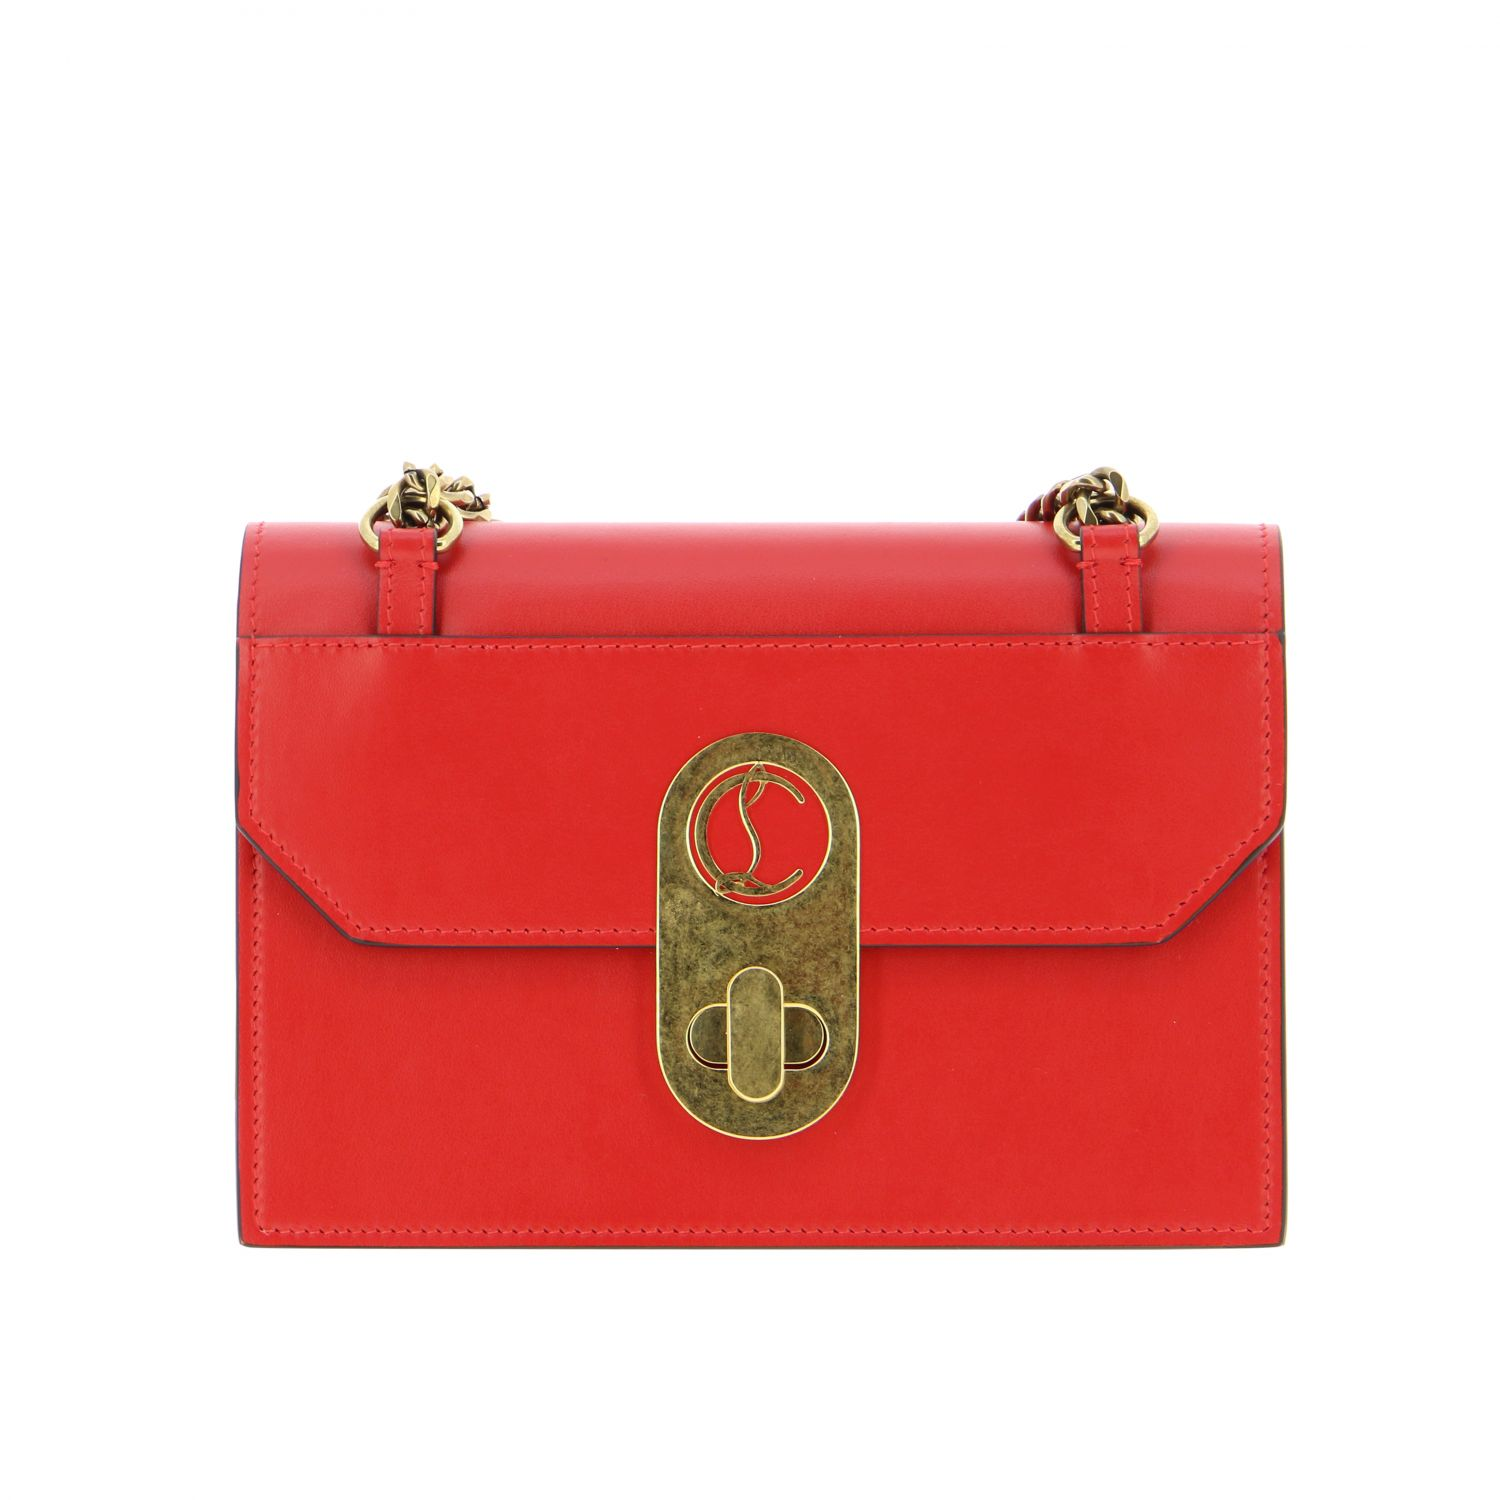 Elisa Christian Louboutin leather bag red 1